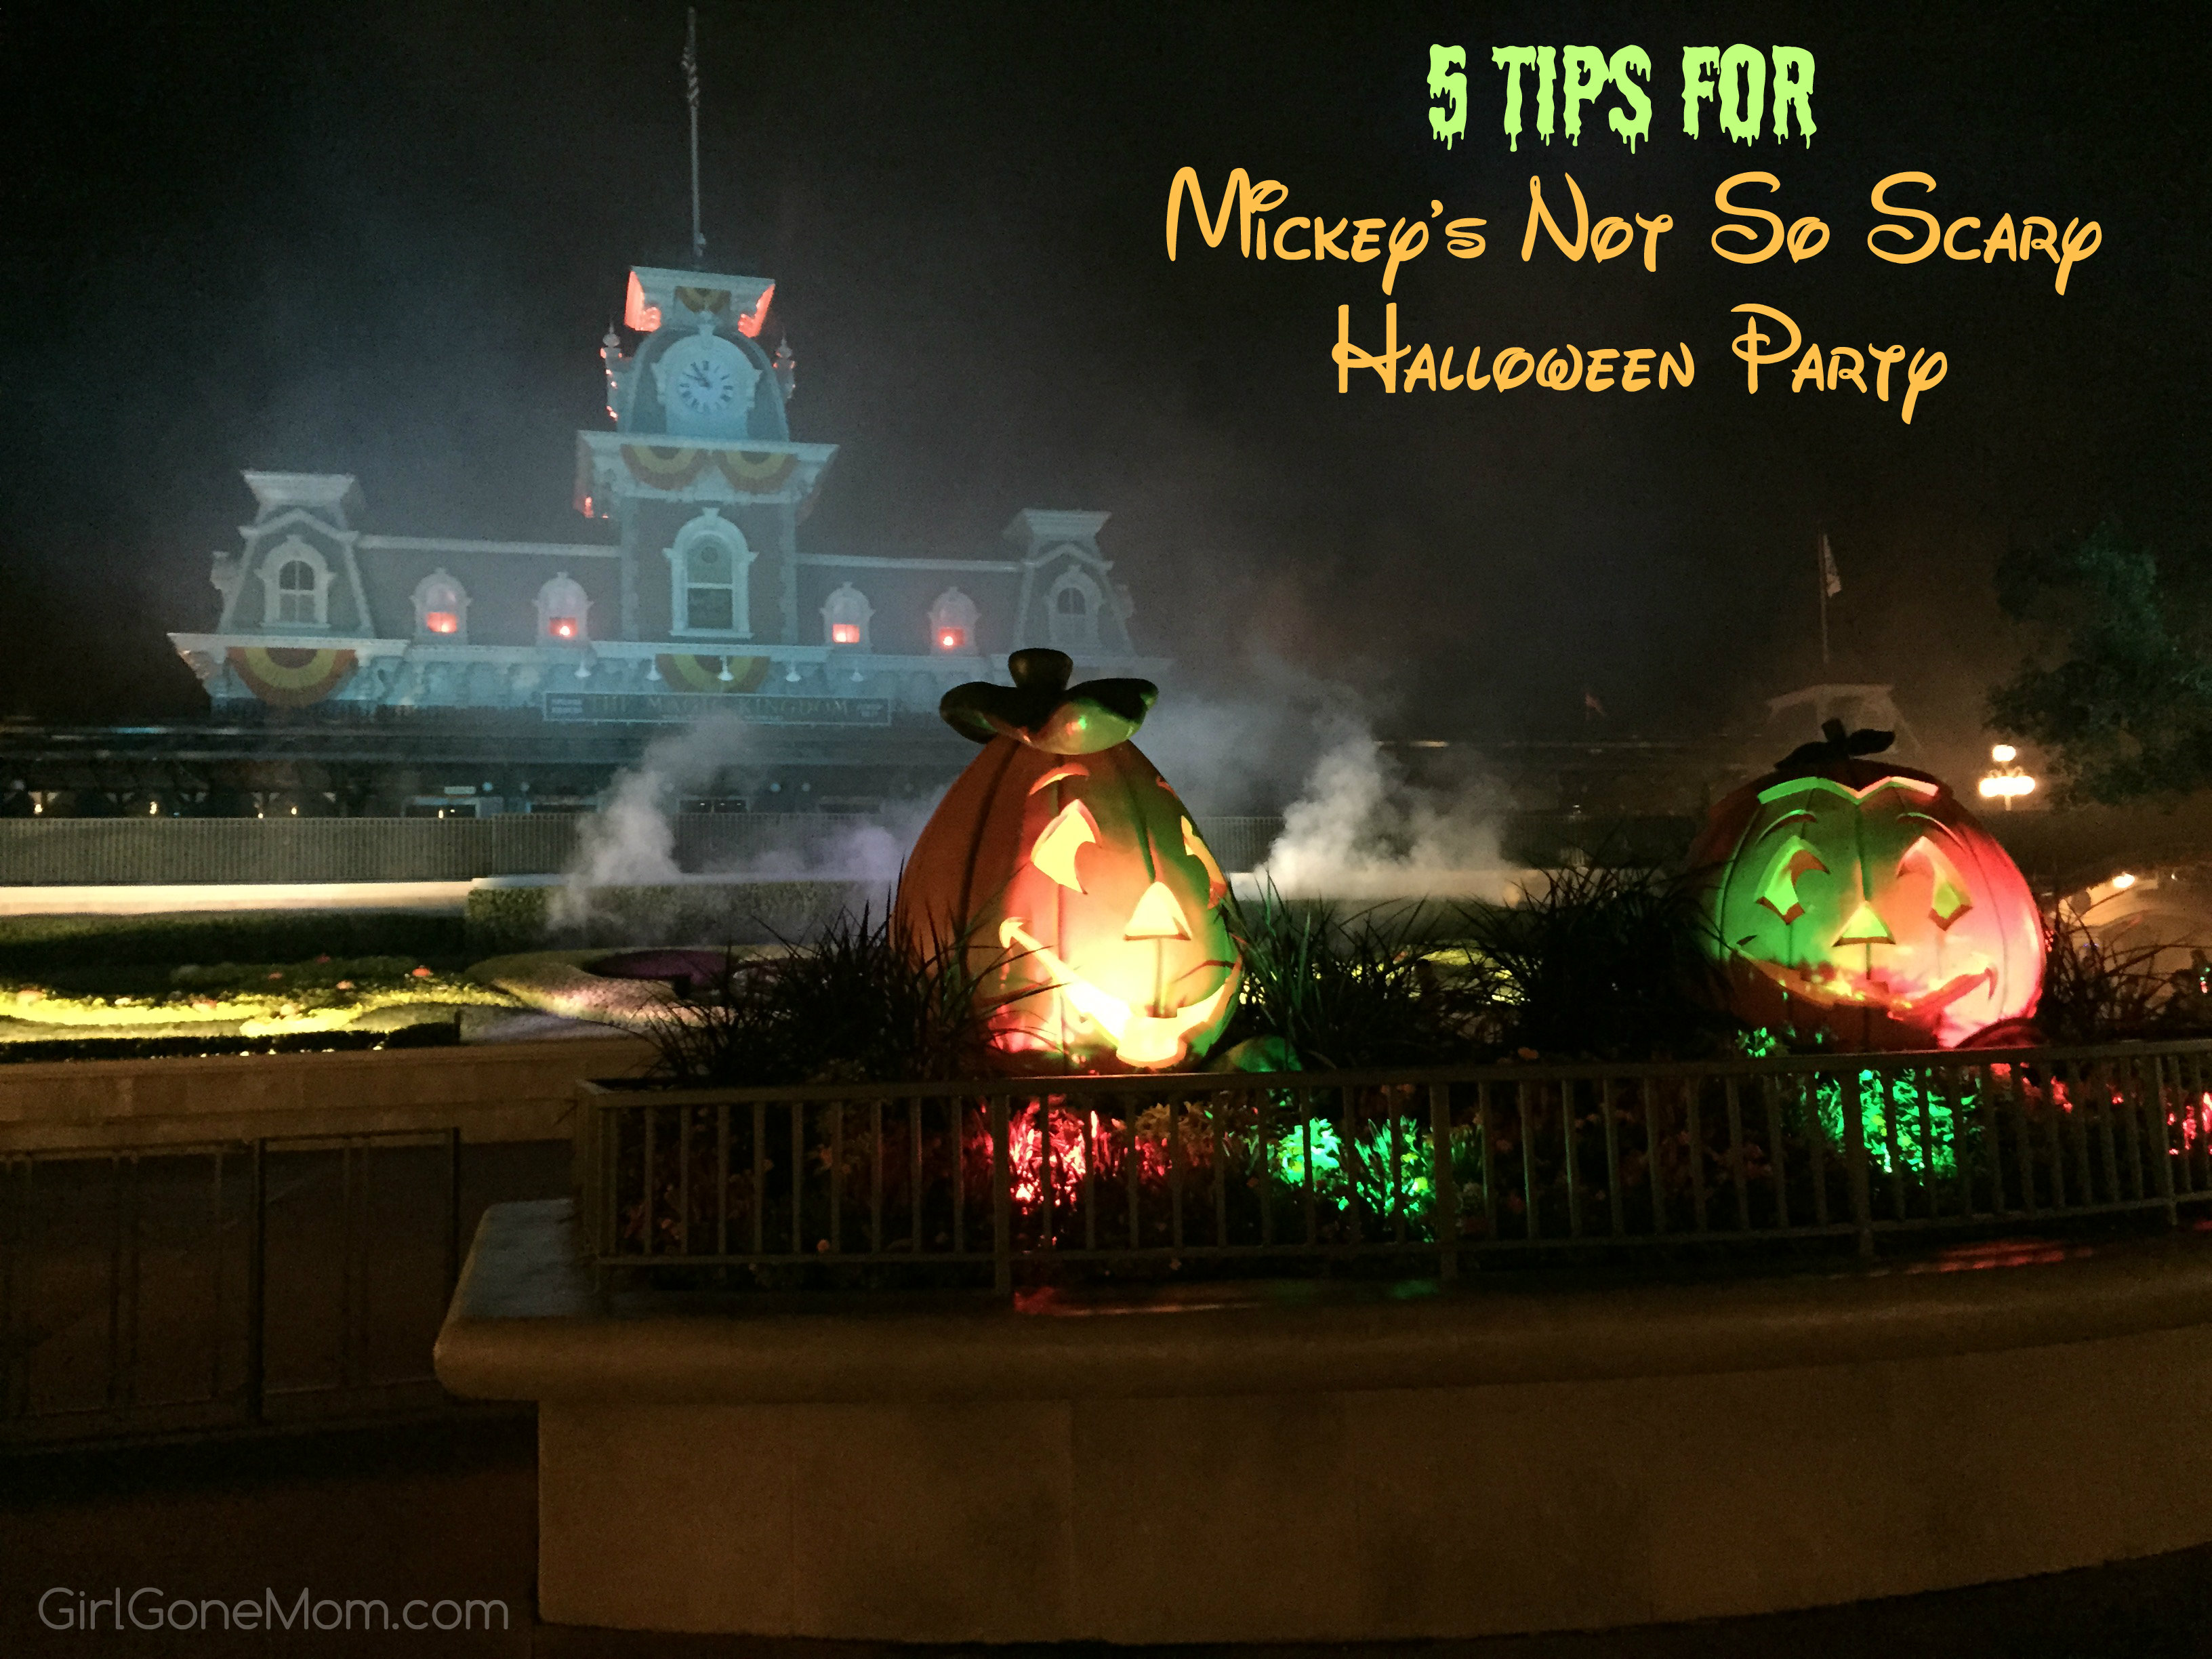 Mickey's Not So Scary Halloween Party Tips - Girl Gone Mom